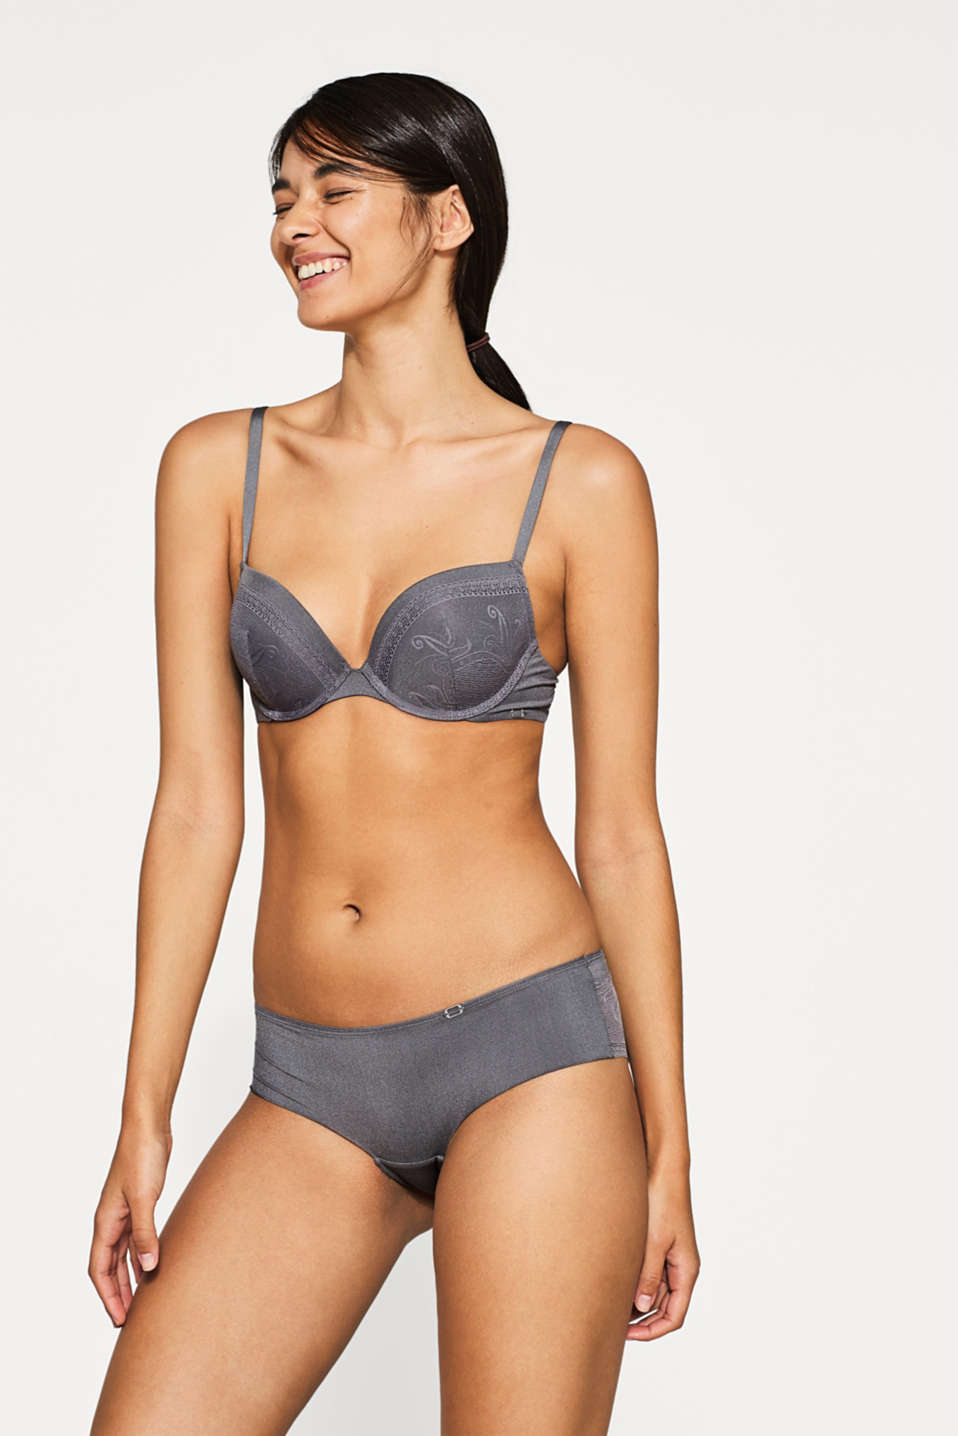 Esprit - NYE push-up bra in filigree lace